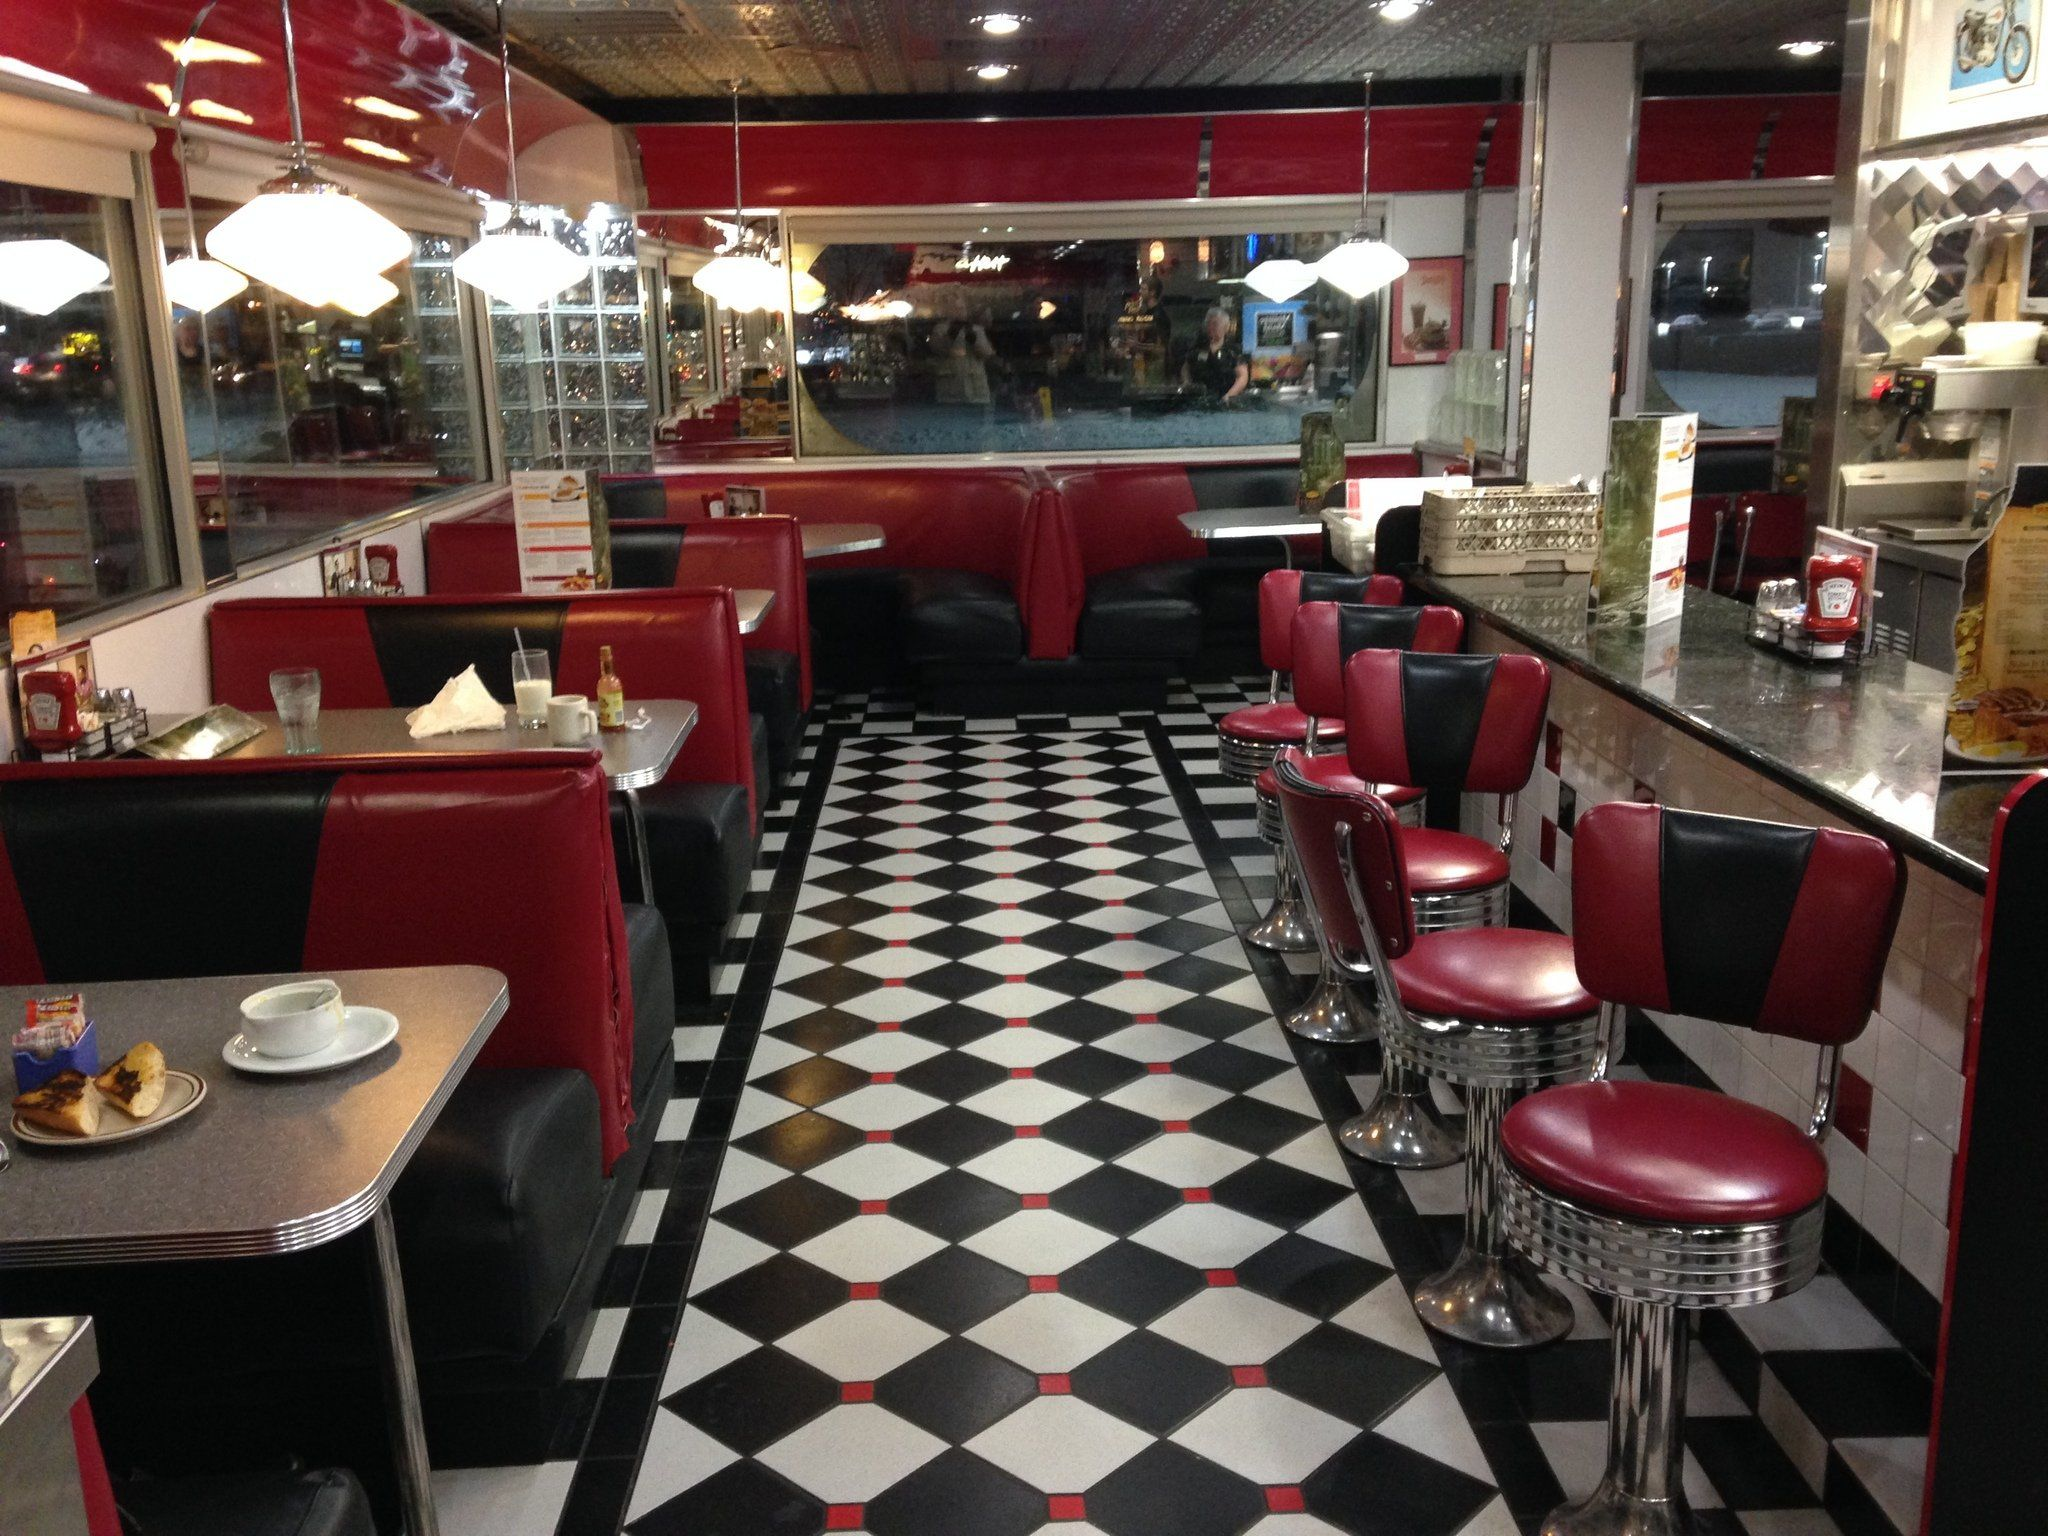 Pin by Karen Posard on Diners & Drive Ins (retro look) | Pinterest ...